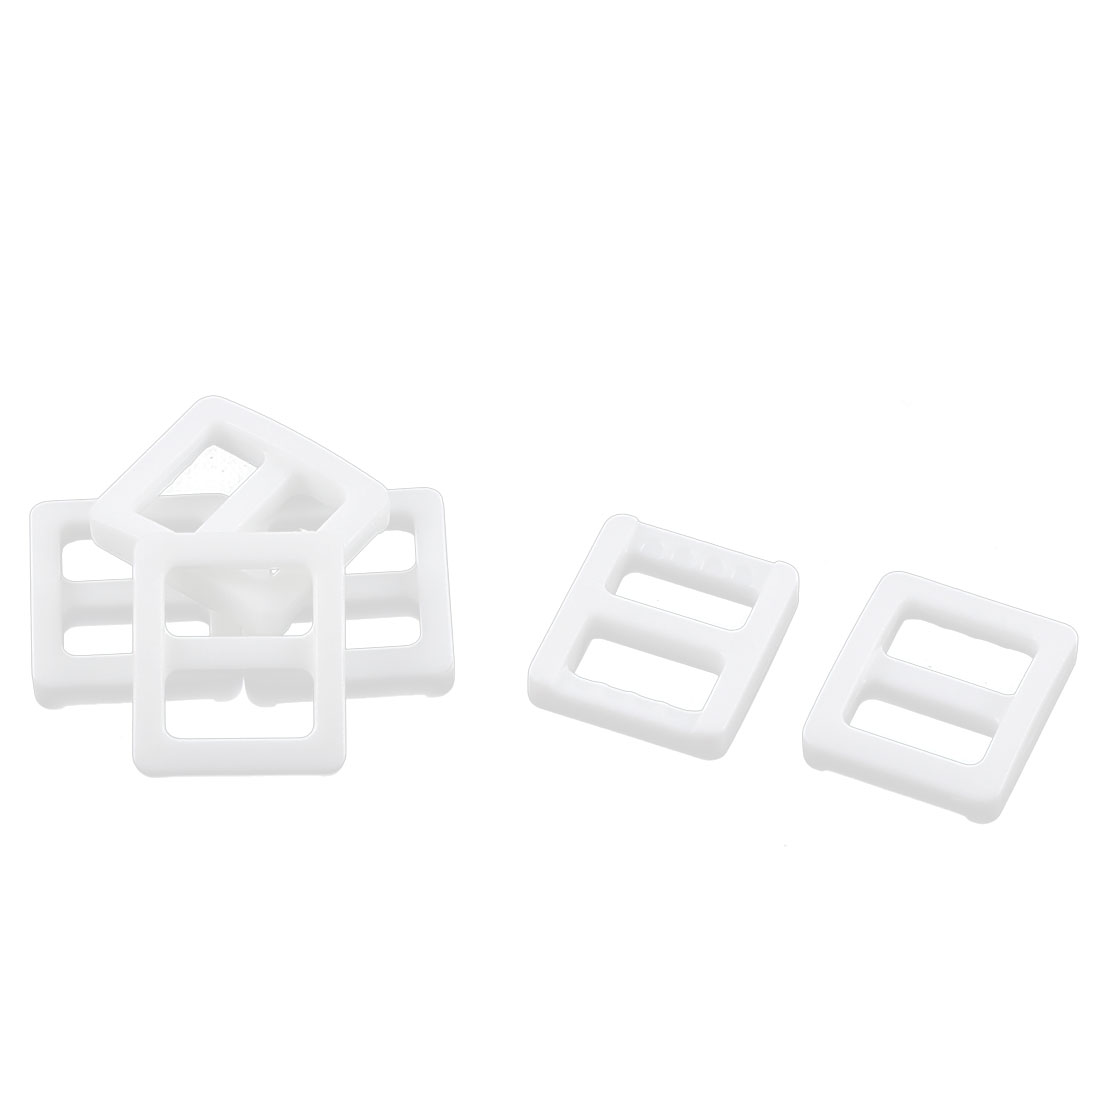 Backpack Handbag Hard Plastic Repairing Tool Tri Glide Buckle White 6 Pcs